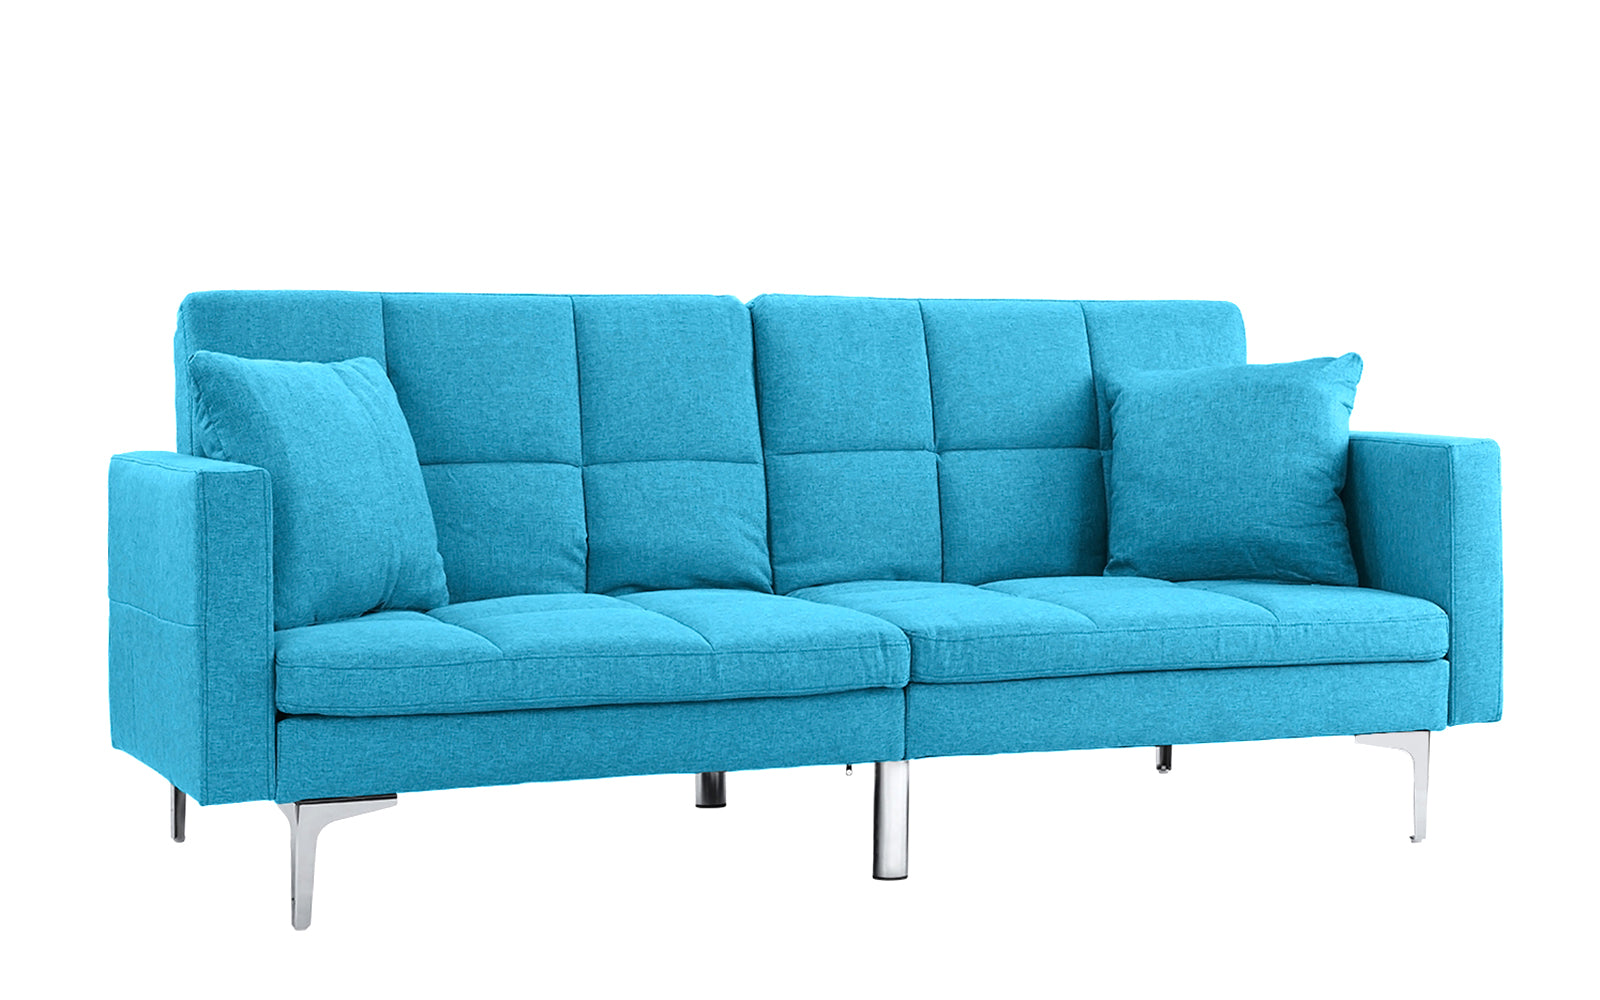 Savion Contemporary Box Tufted Sleeper Futon